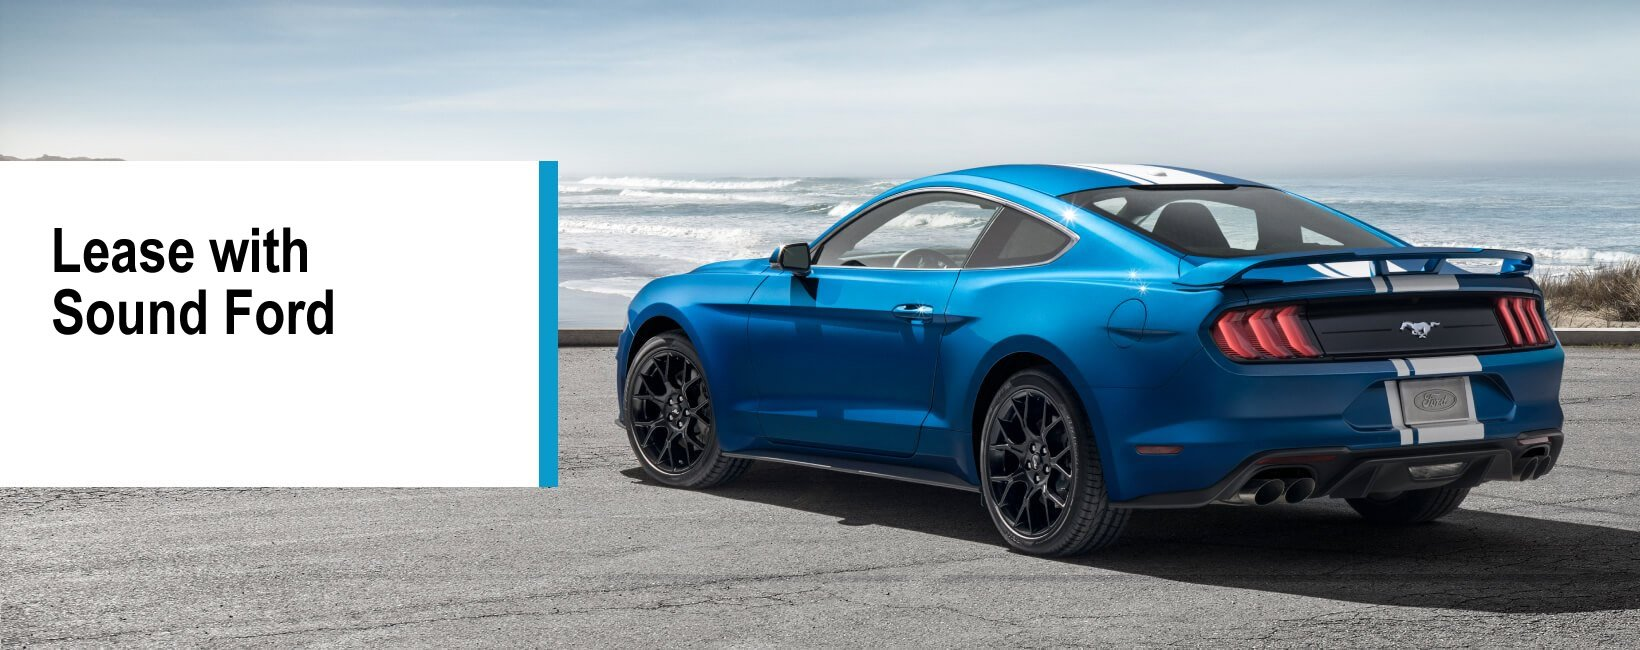 ford car leasing service seattle bellevue tacoma wa